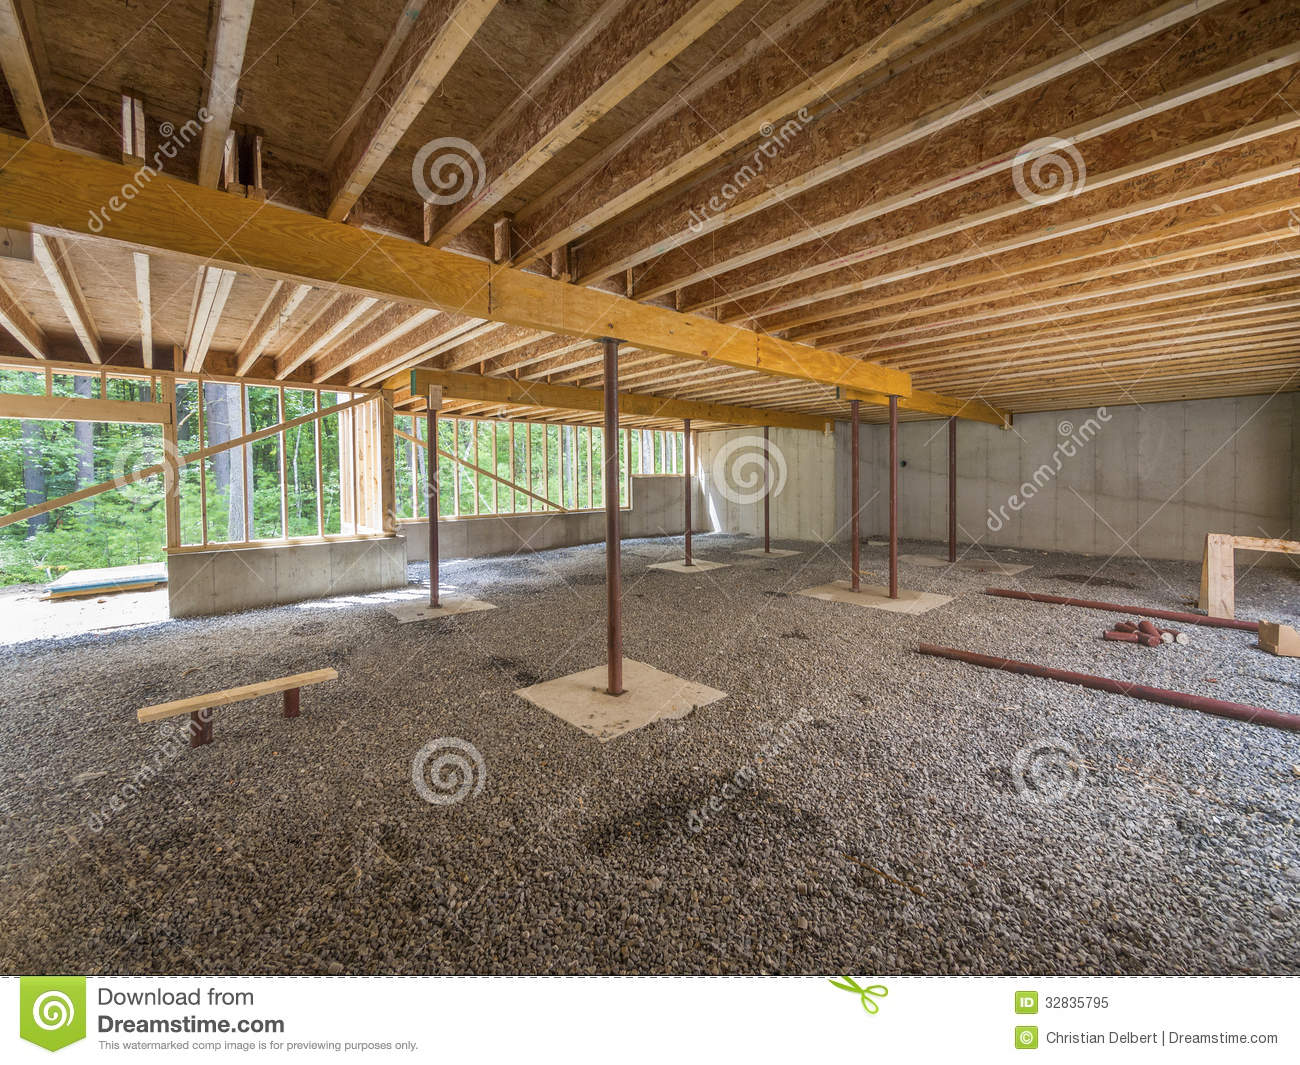 Basement construction under a new house stock image for Building a basement foundation